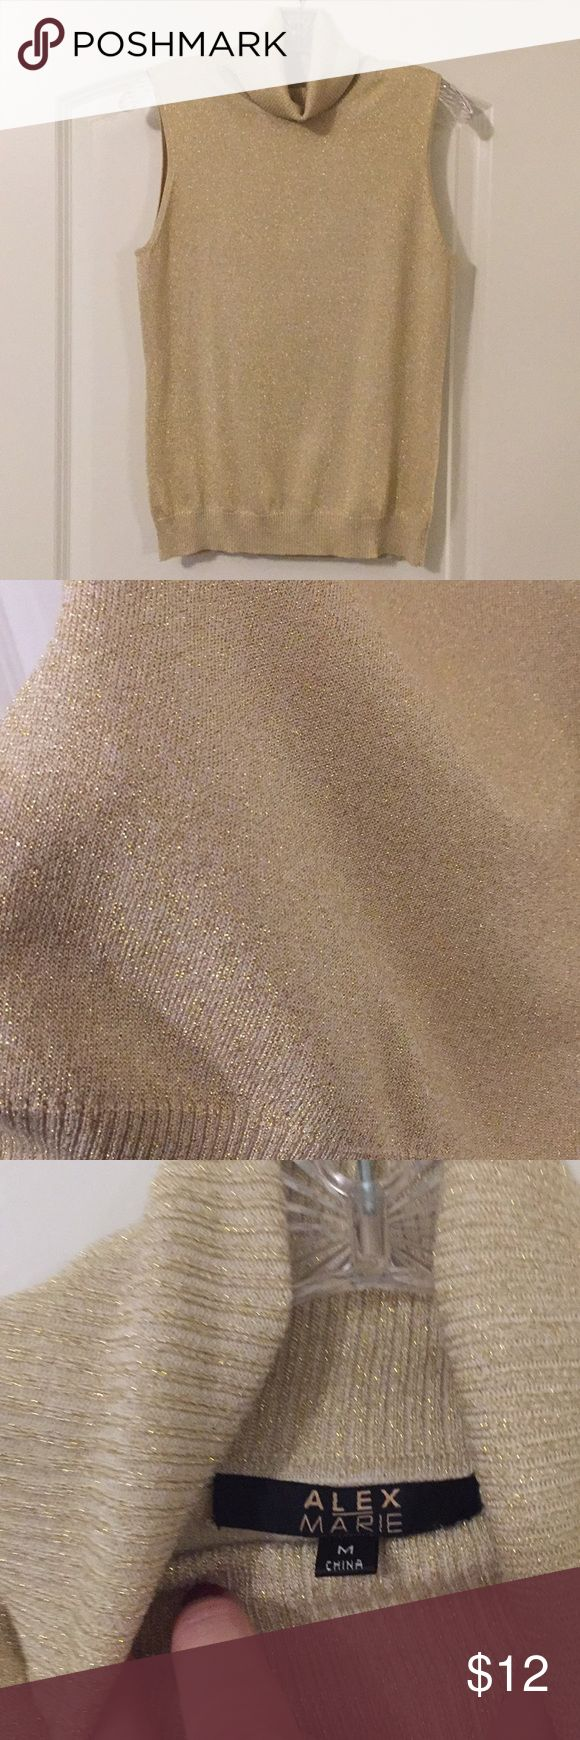 Metallic Gold Turtleneck Shell Sparkly light gold sleeveless shell for under jackets, blazers and more. Size medium. By Alex Marie. Like New used condition. Alex Marie Tops